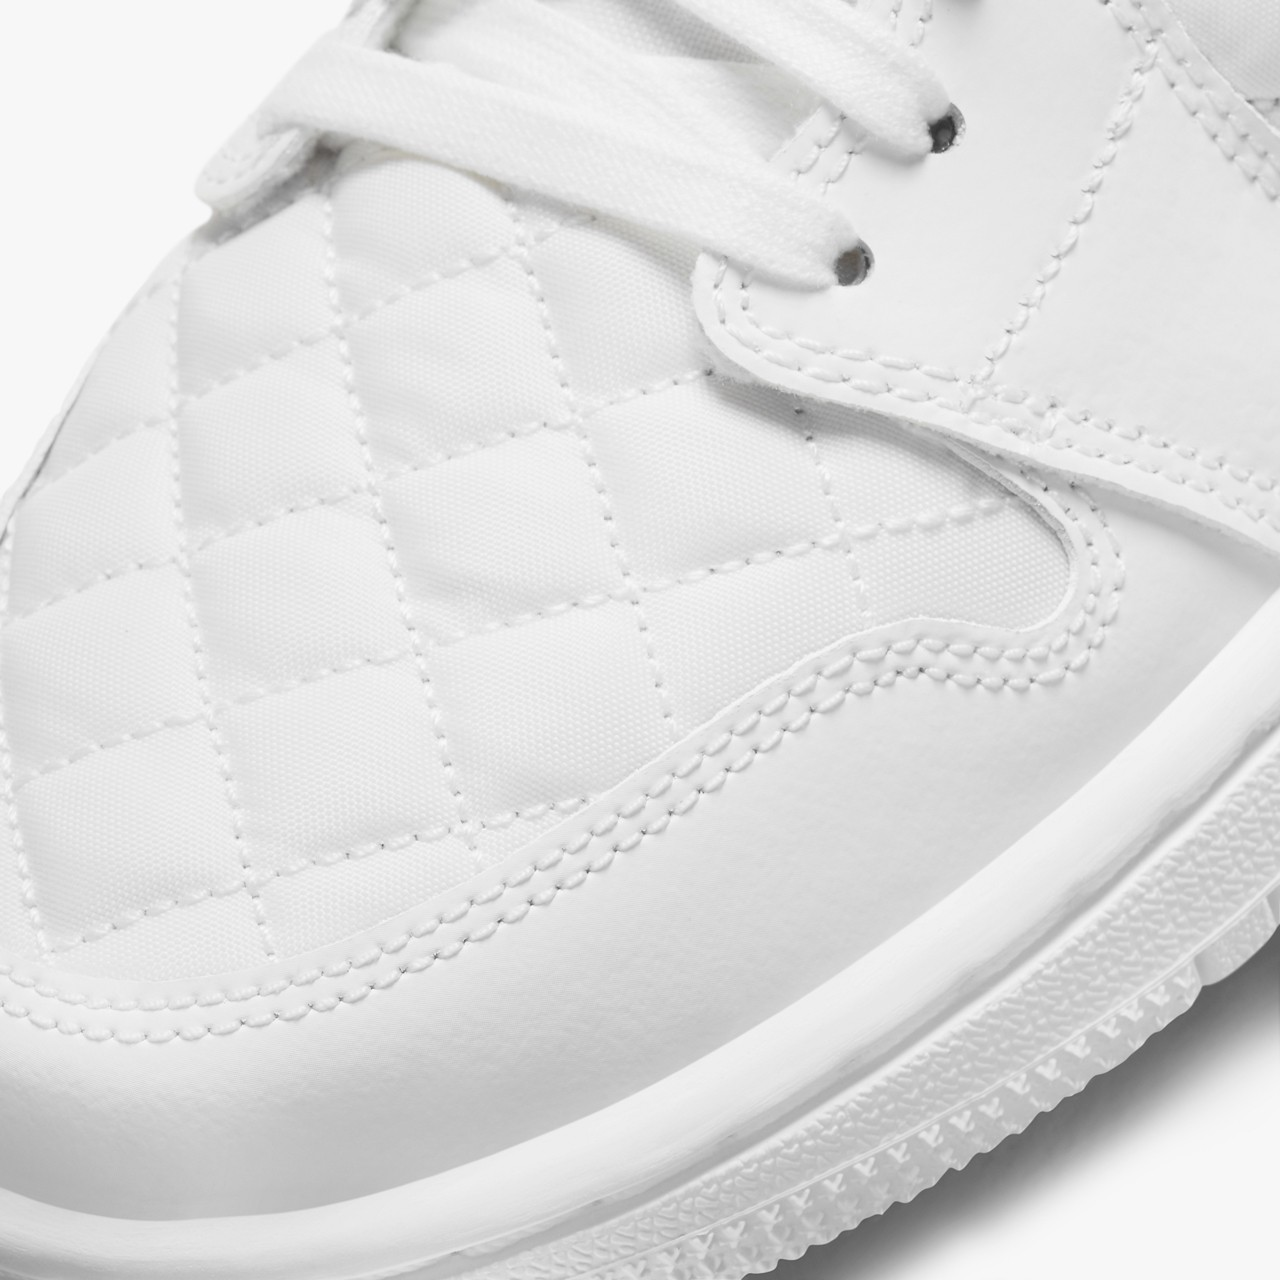 Air-Jordan-1-Mid-Quilted-White-Closer-Look